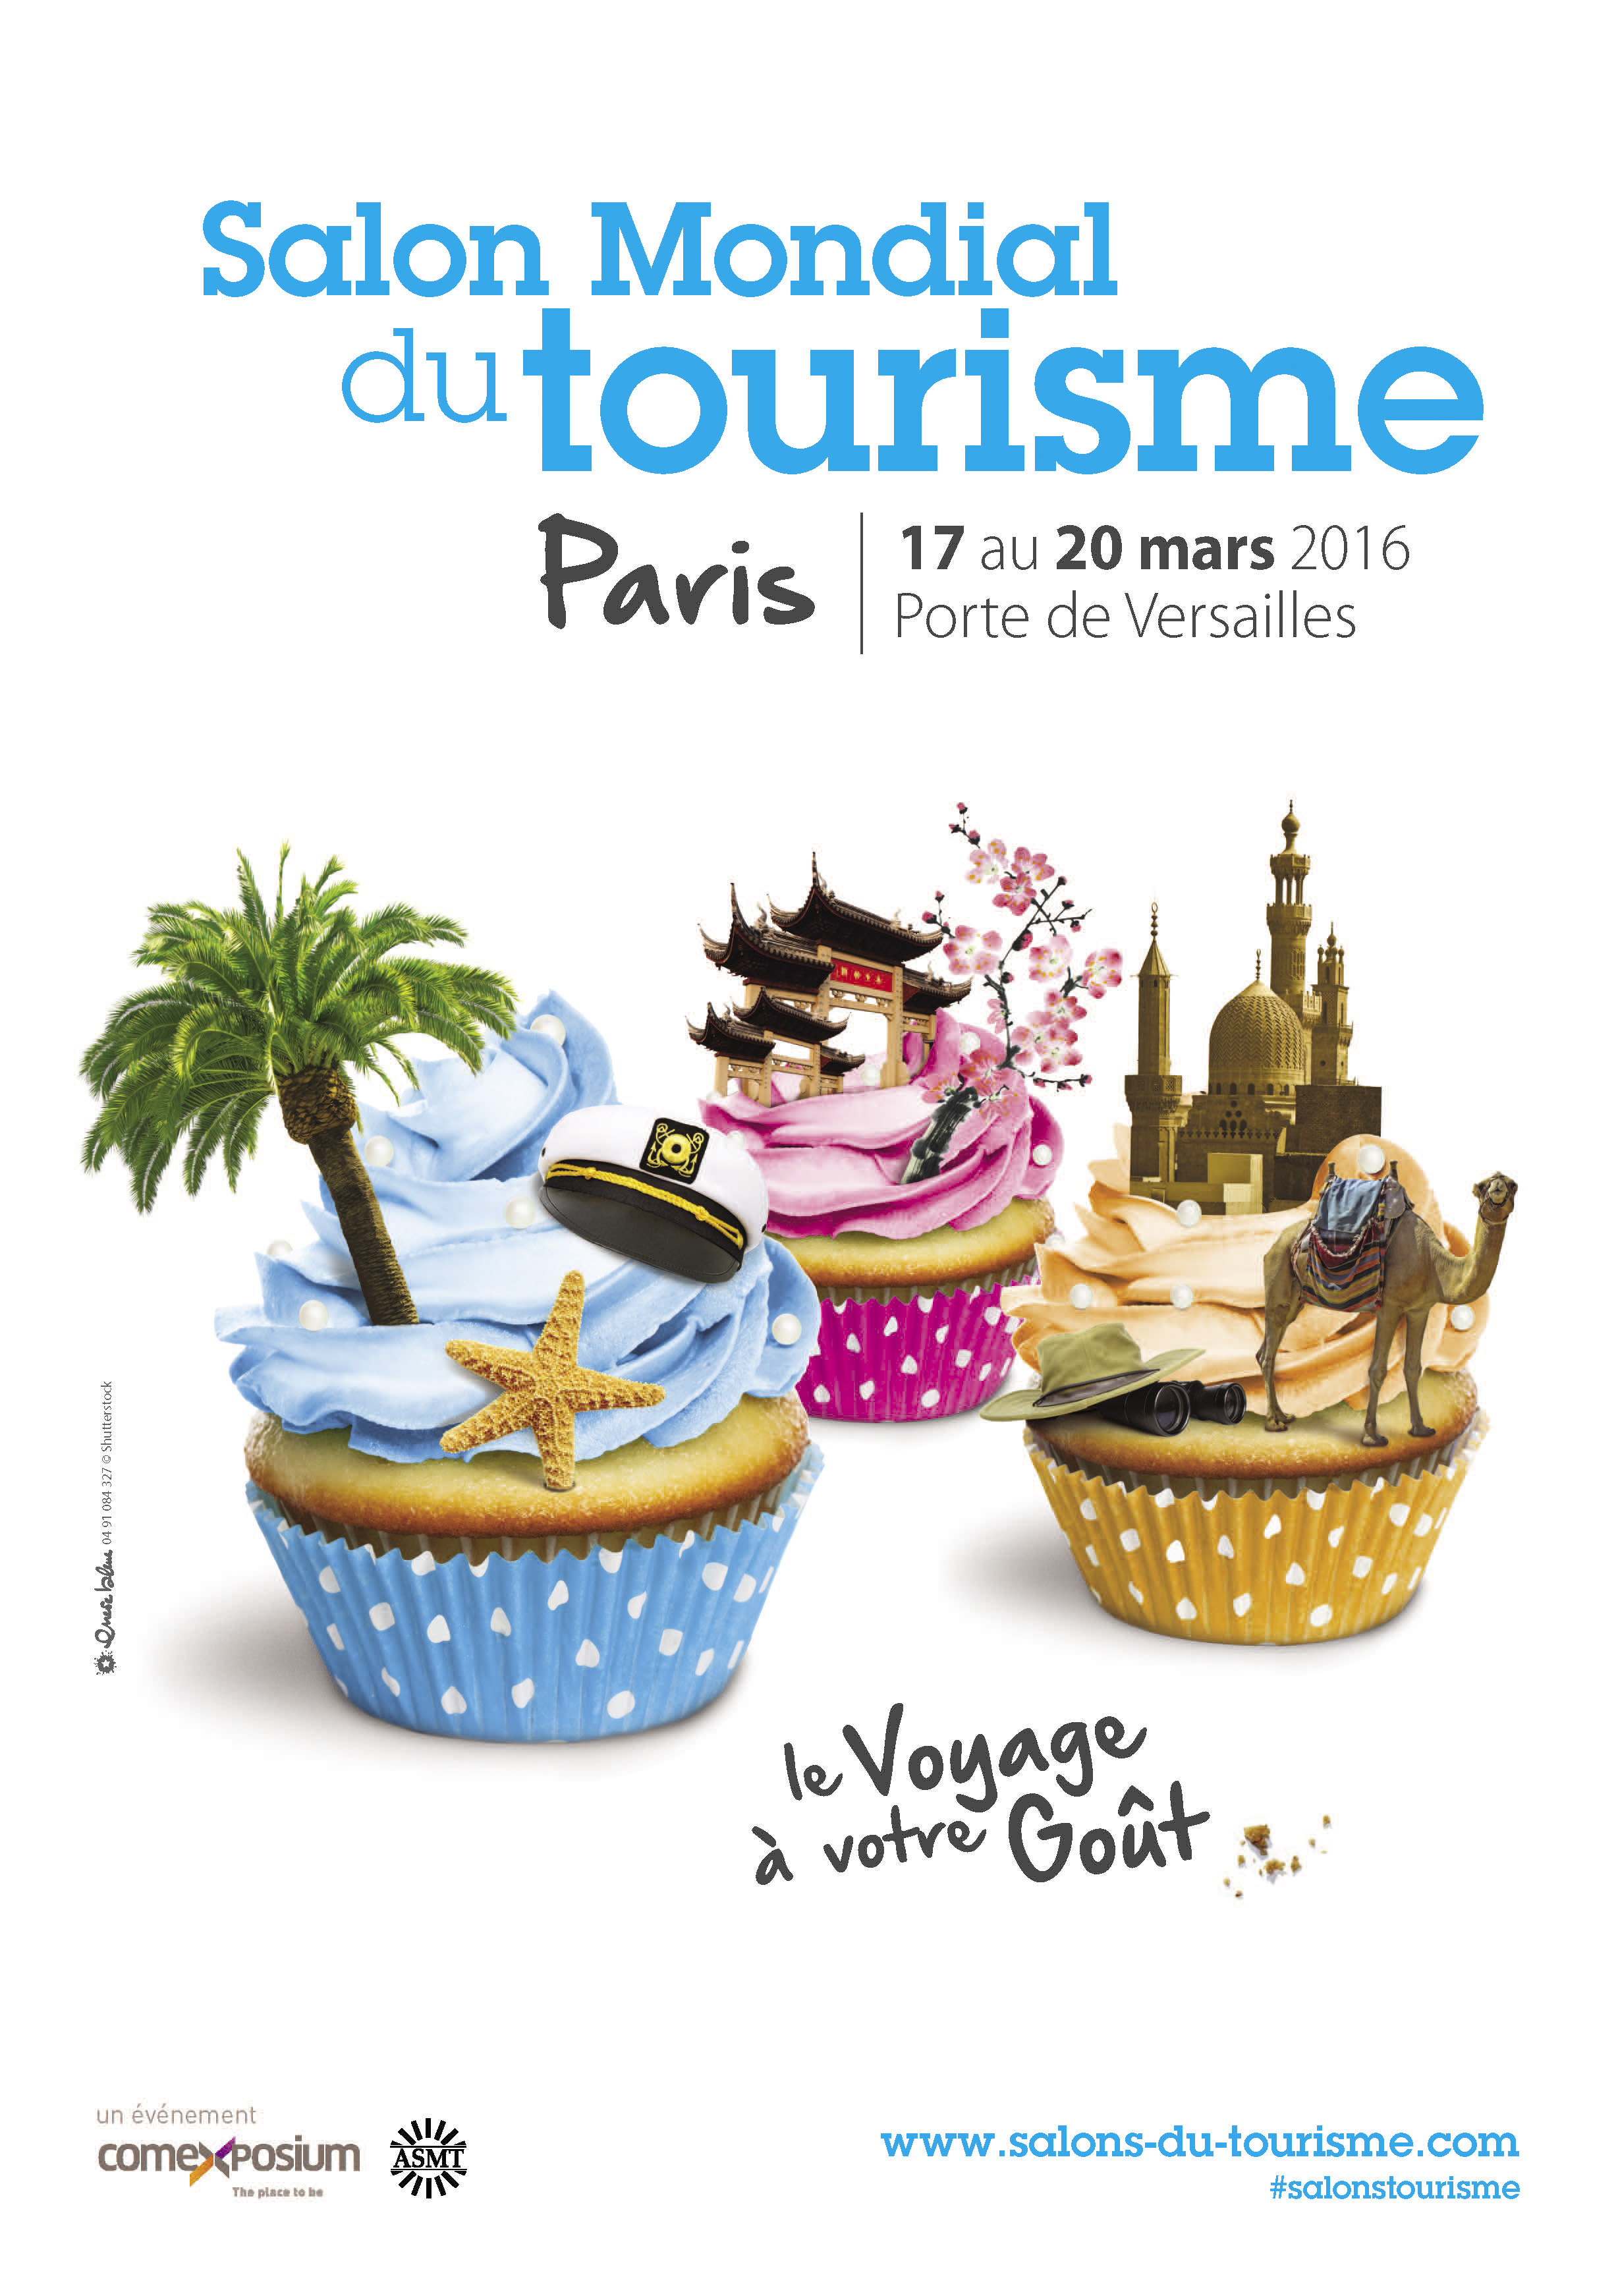 Les tendances voyage au salon mondial du tourisme paris for Salon a paris